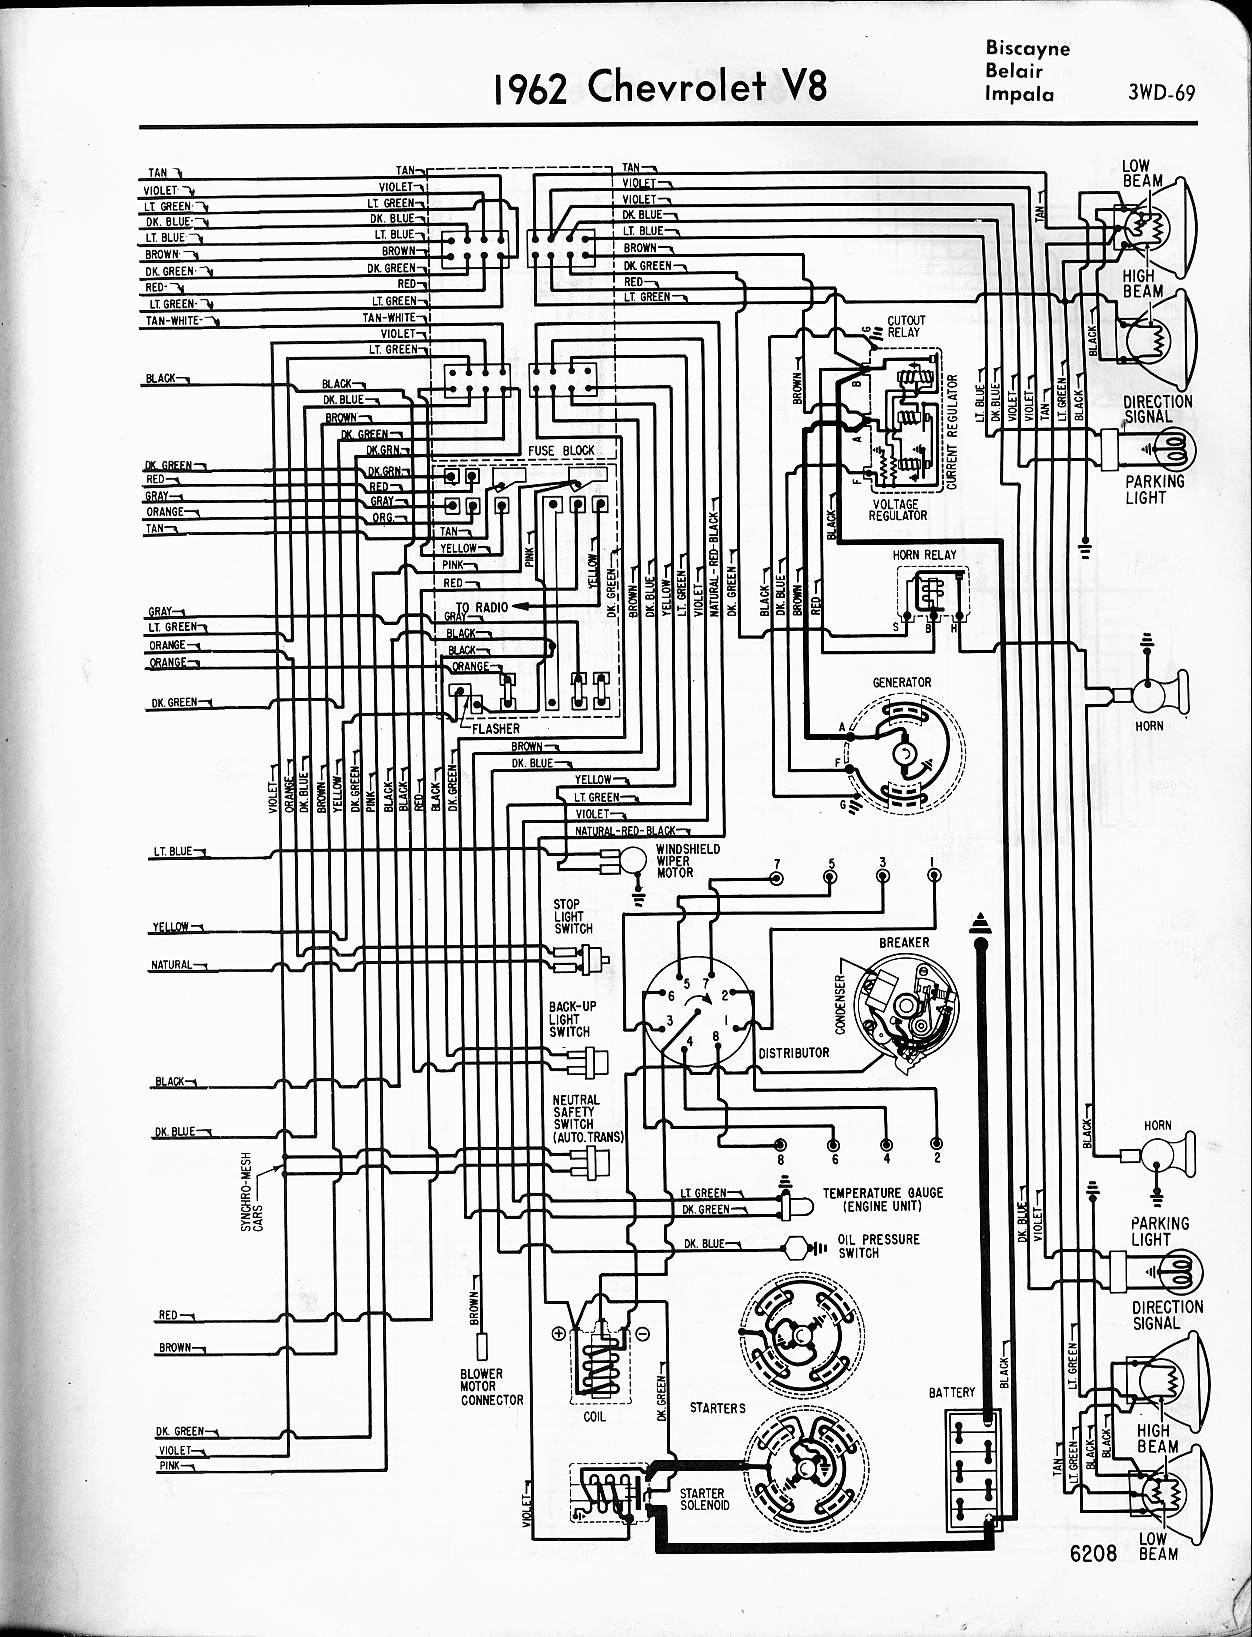 2005 chevy impala wiring diagram Download-1963 impala wiring diagram v8 wiring diagram u2022 rh championapp co 2005 Impala Ignition Wiring Diagram 1967 Chevy Impala Wiring Diagram 9-a